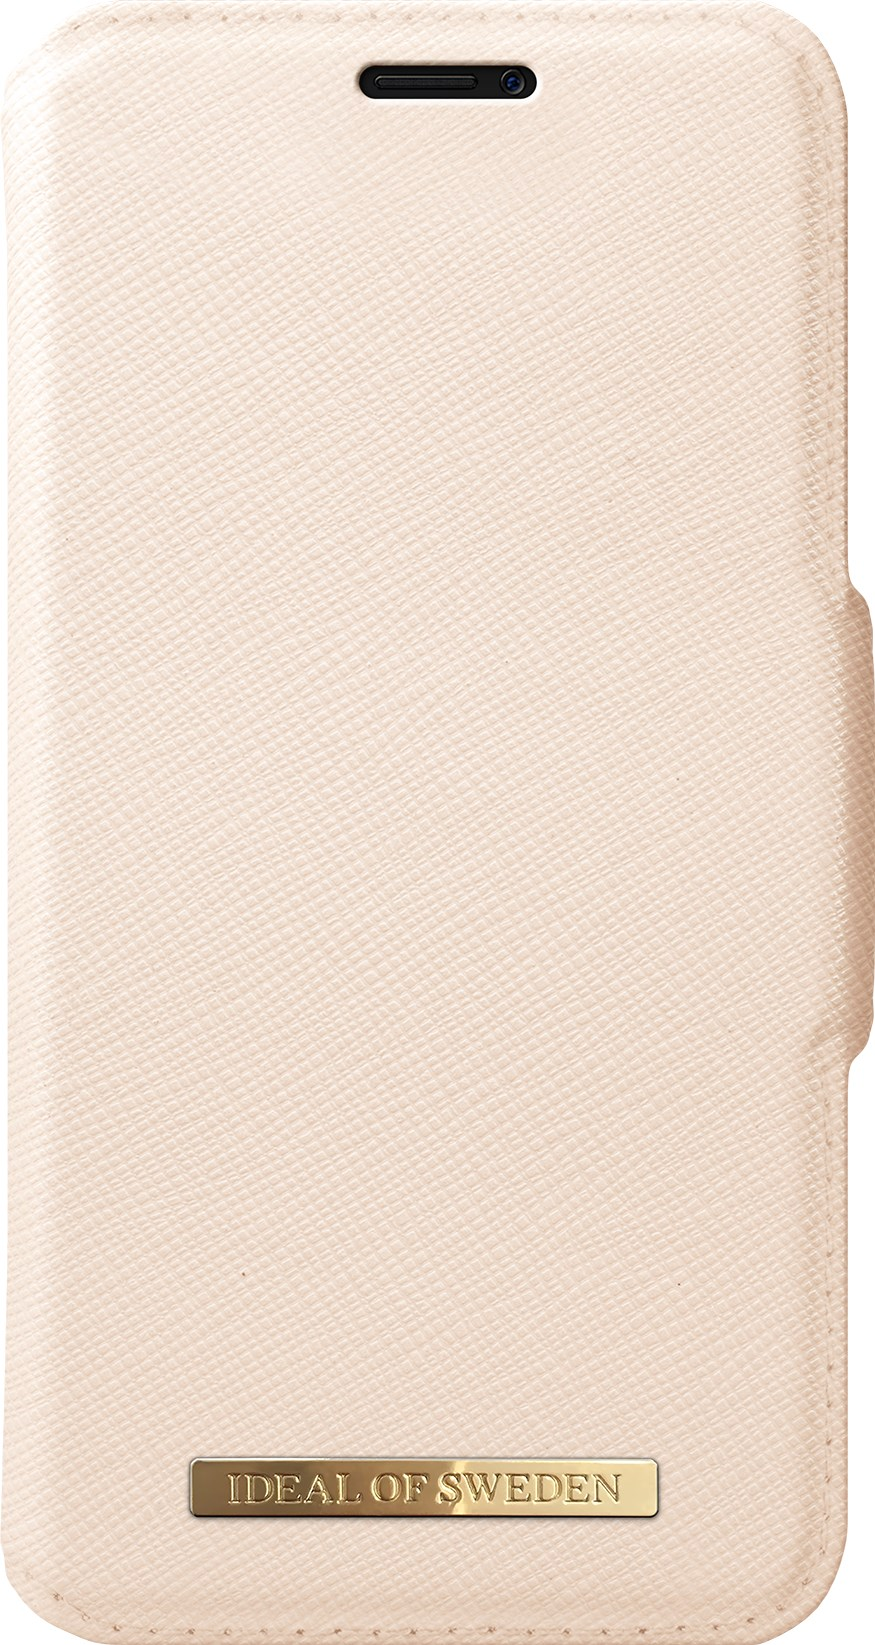 iDeal of Sweden Ideal Fashion Wallet Iphone Xs Max Beige